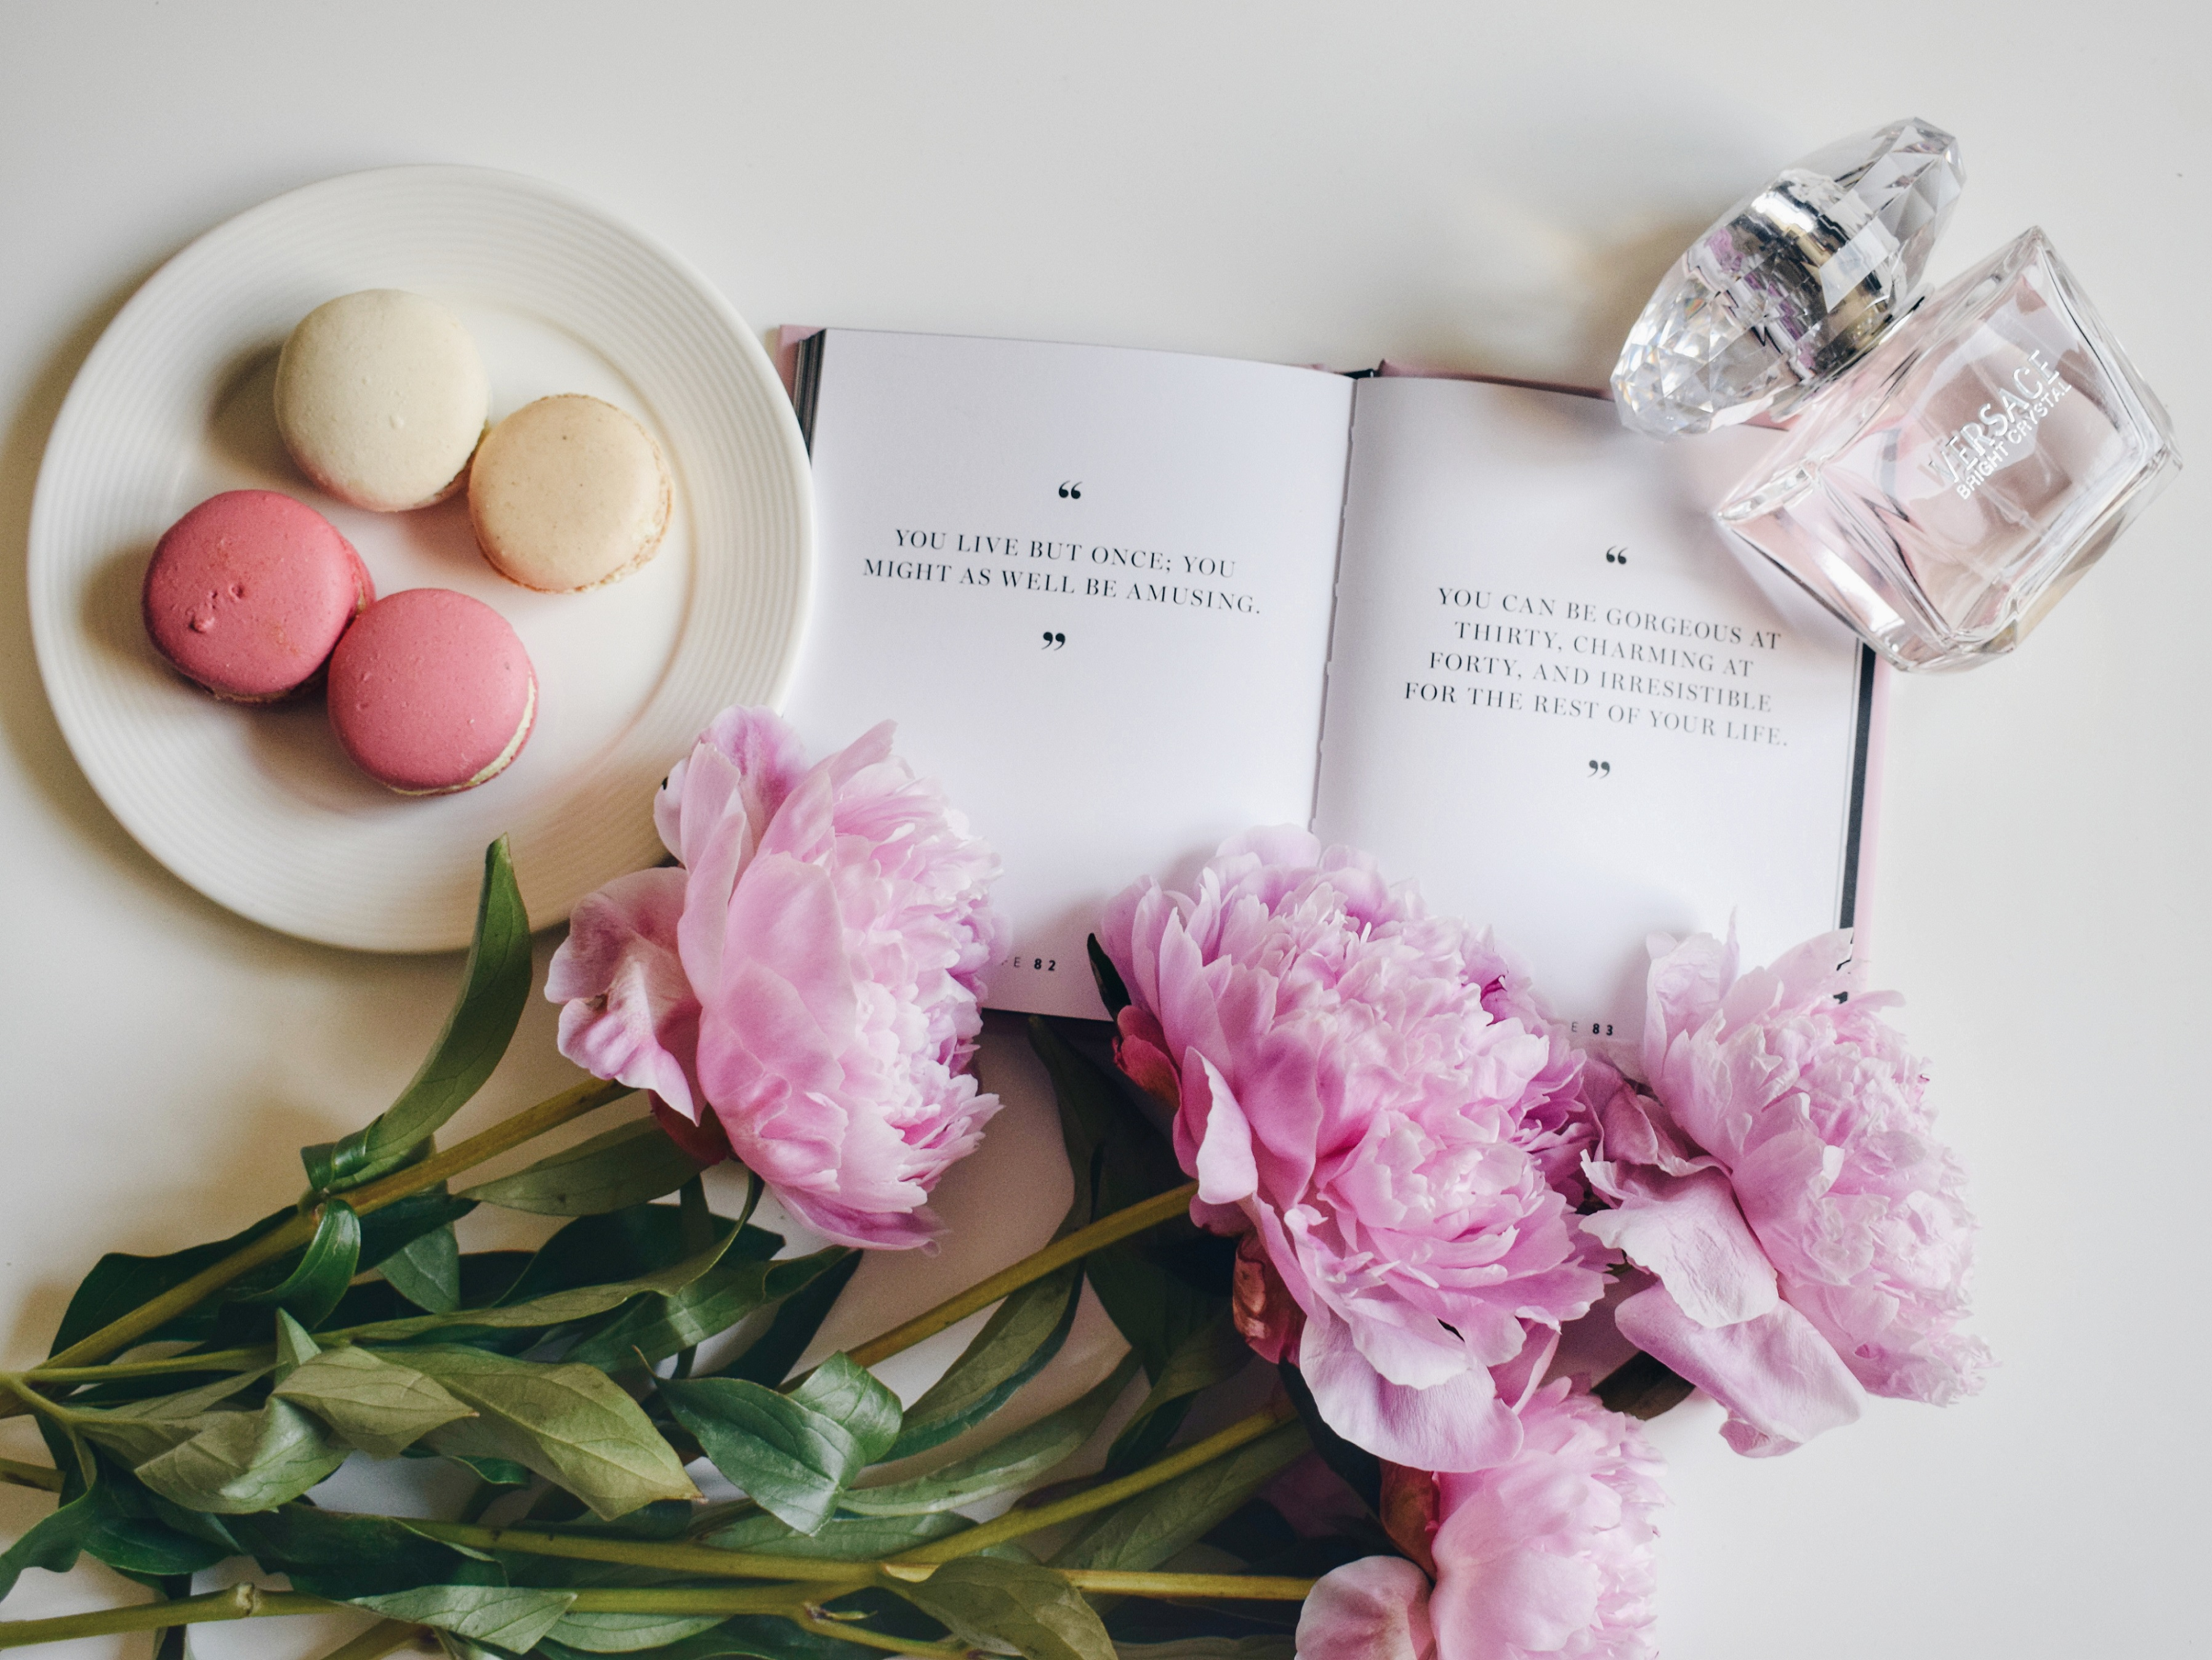 Outlandish blog things inspire inspiration peonies quote perfume